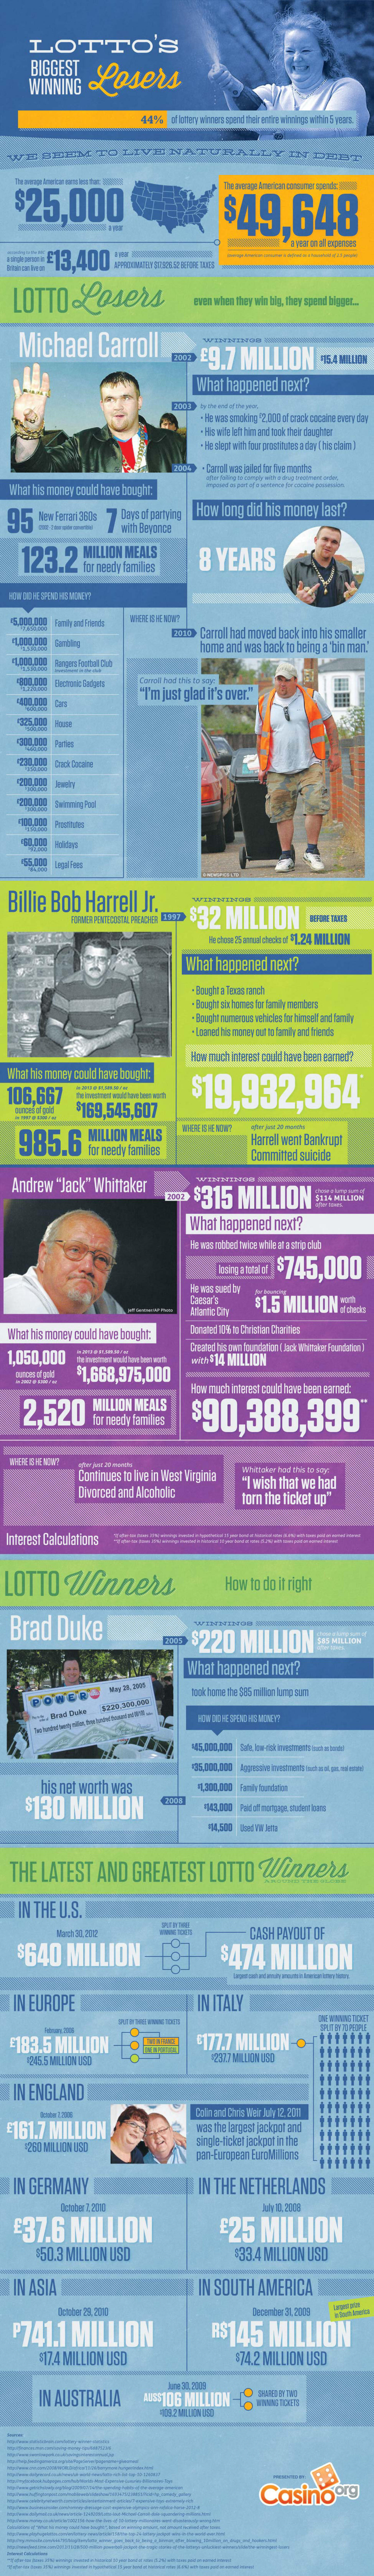 The Lotto's Biggest Winning Losers Infographic